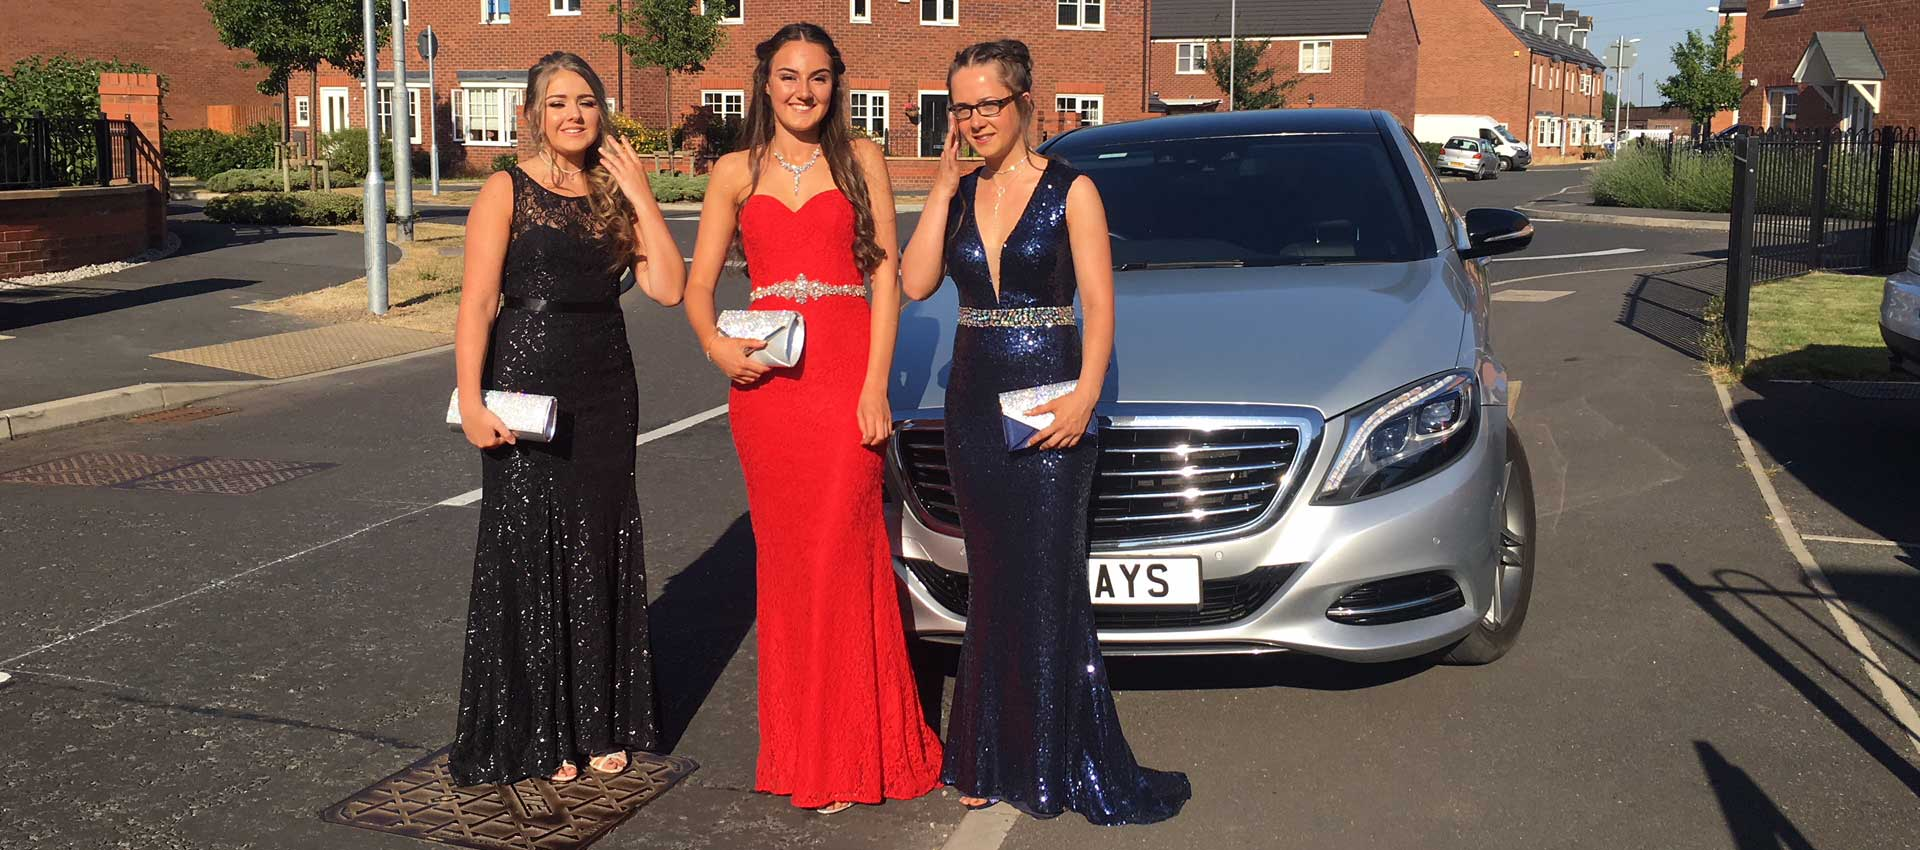 Prom-Chauffeur-Car-Hire-Manchester-Warrington-Cheshire-Merseyside